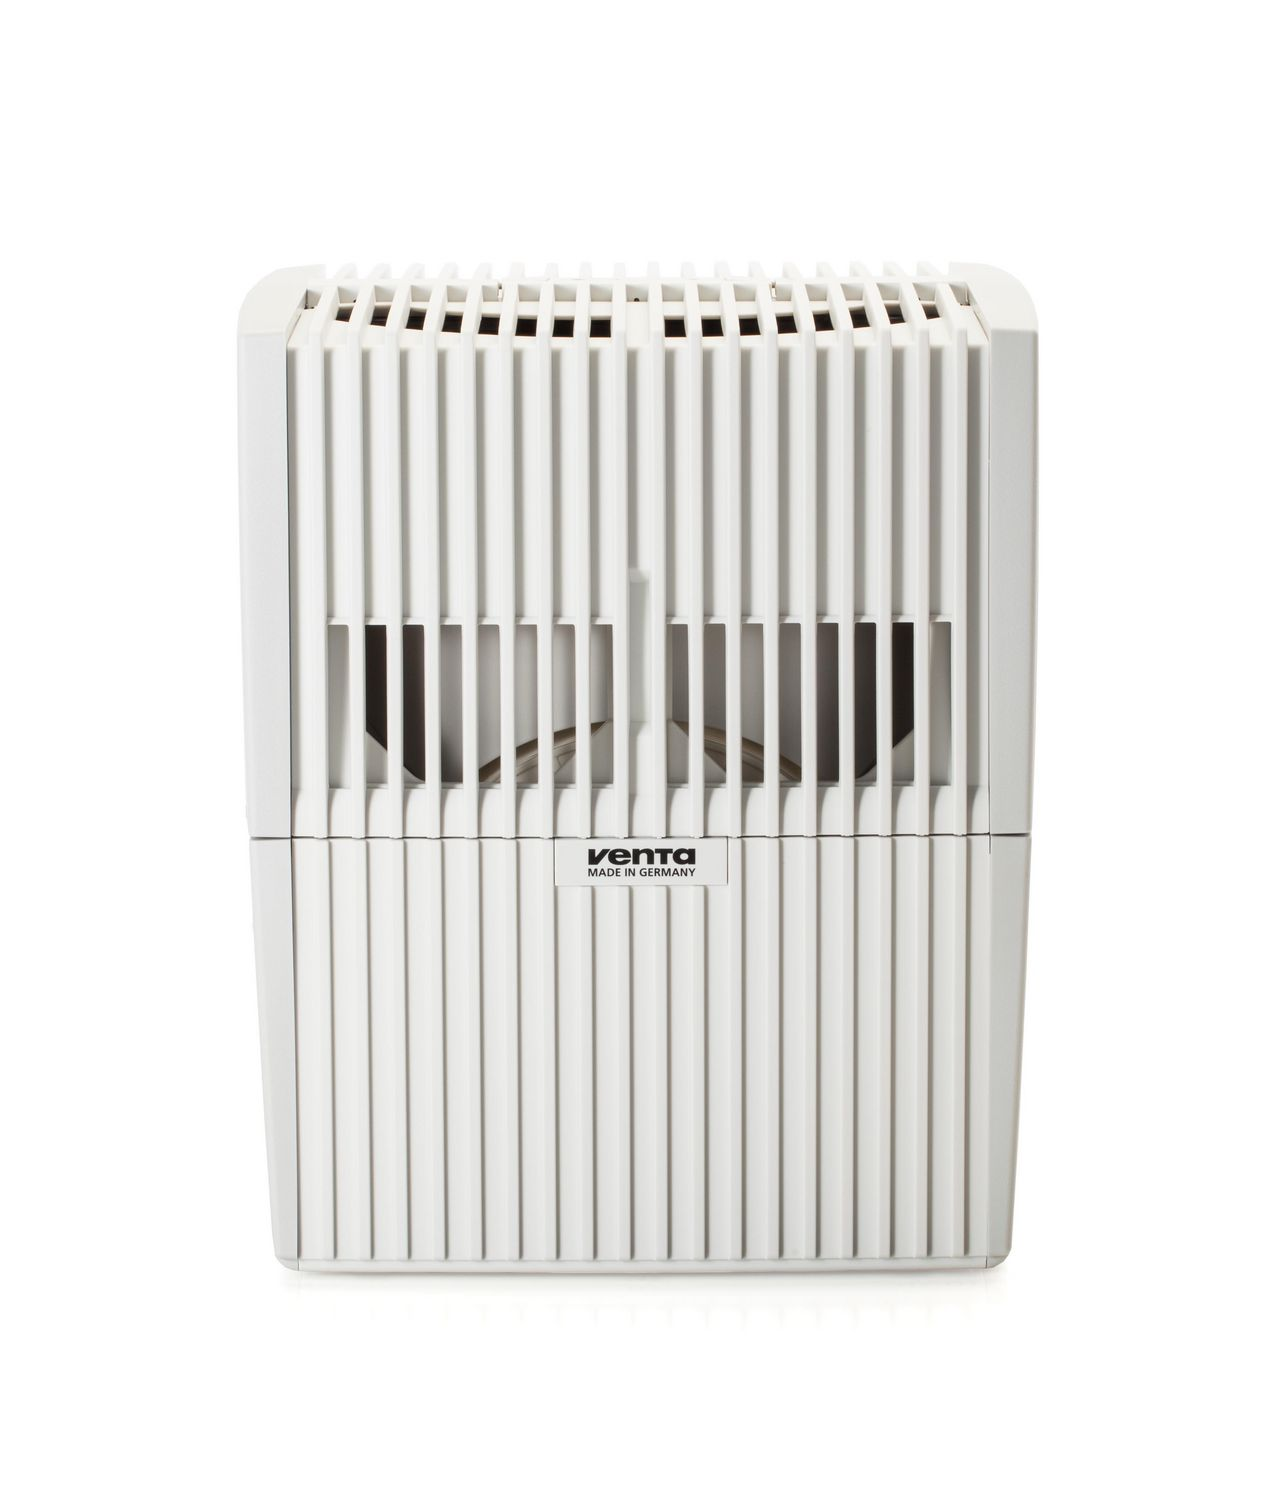 Venta Airwasher Humidifier LW15 GREY